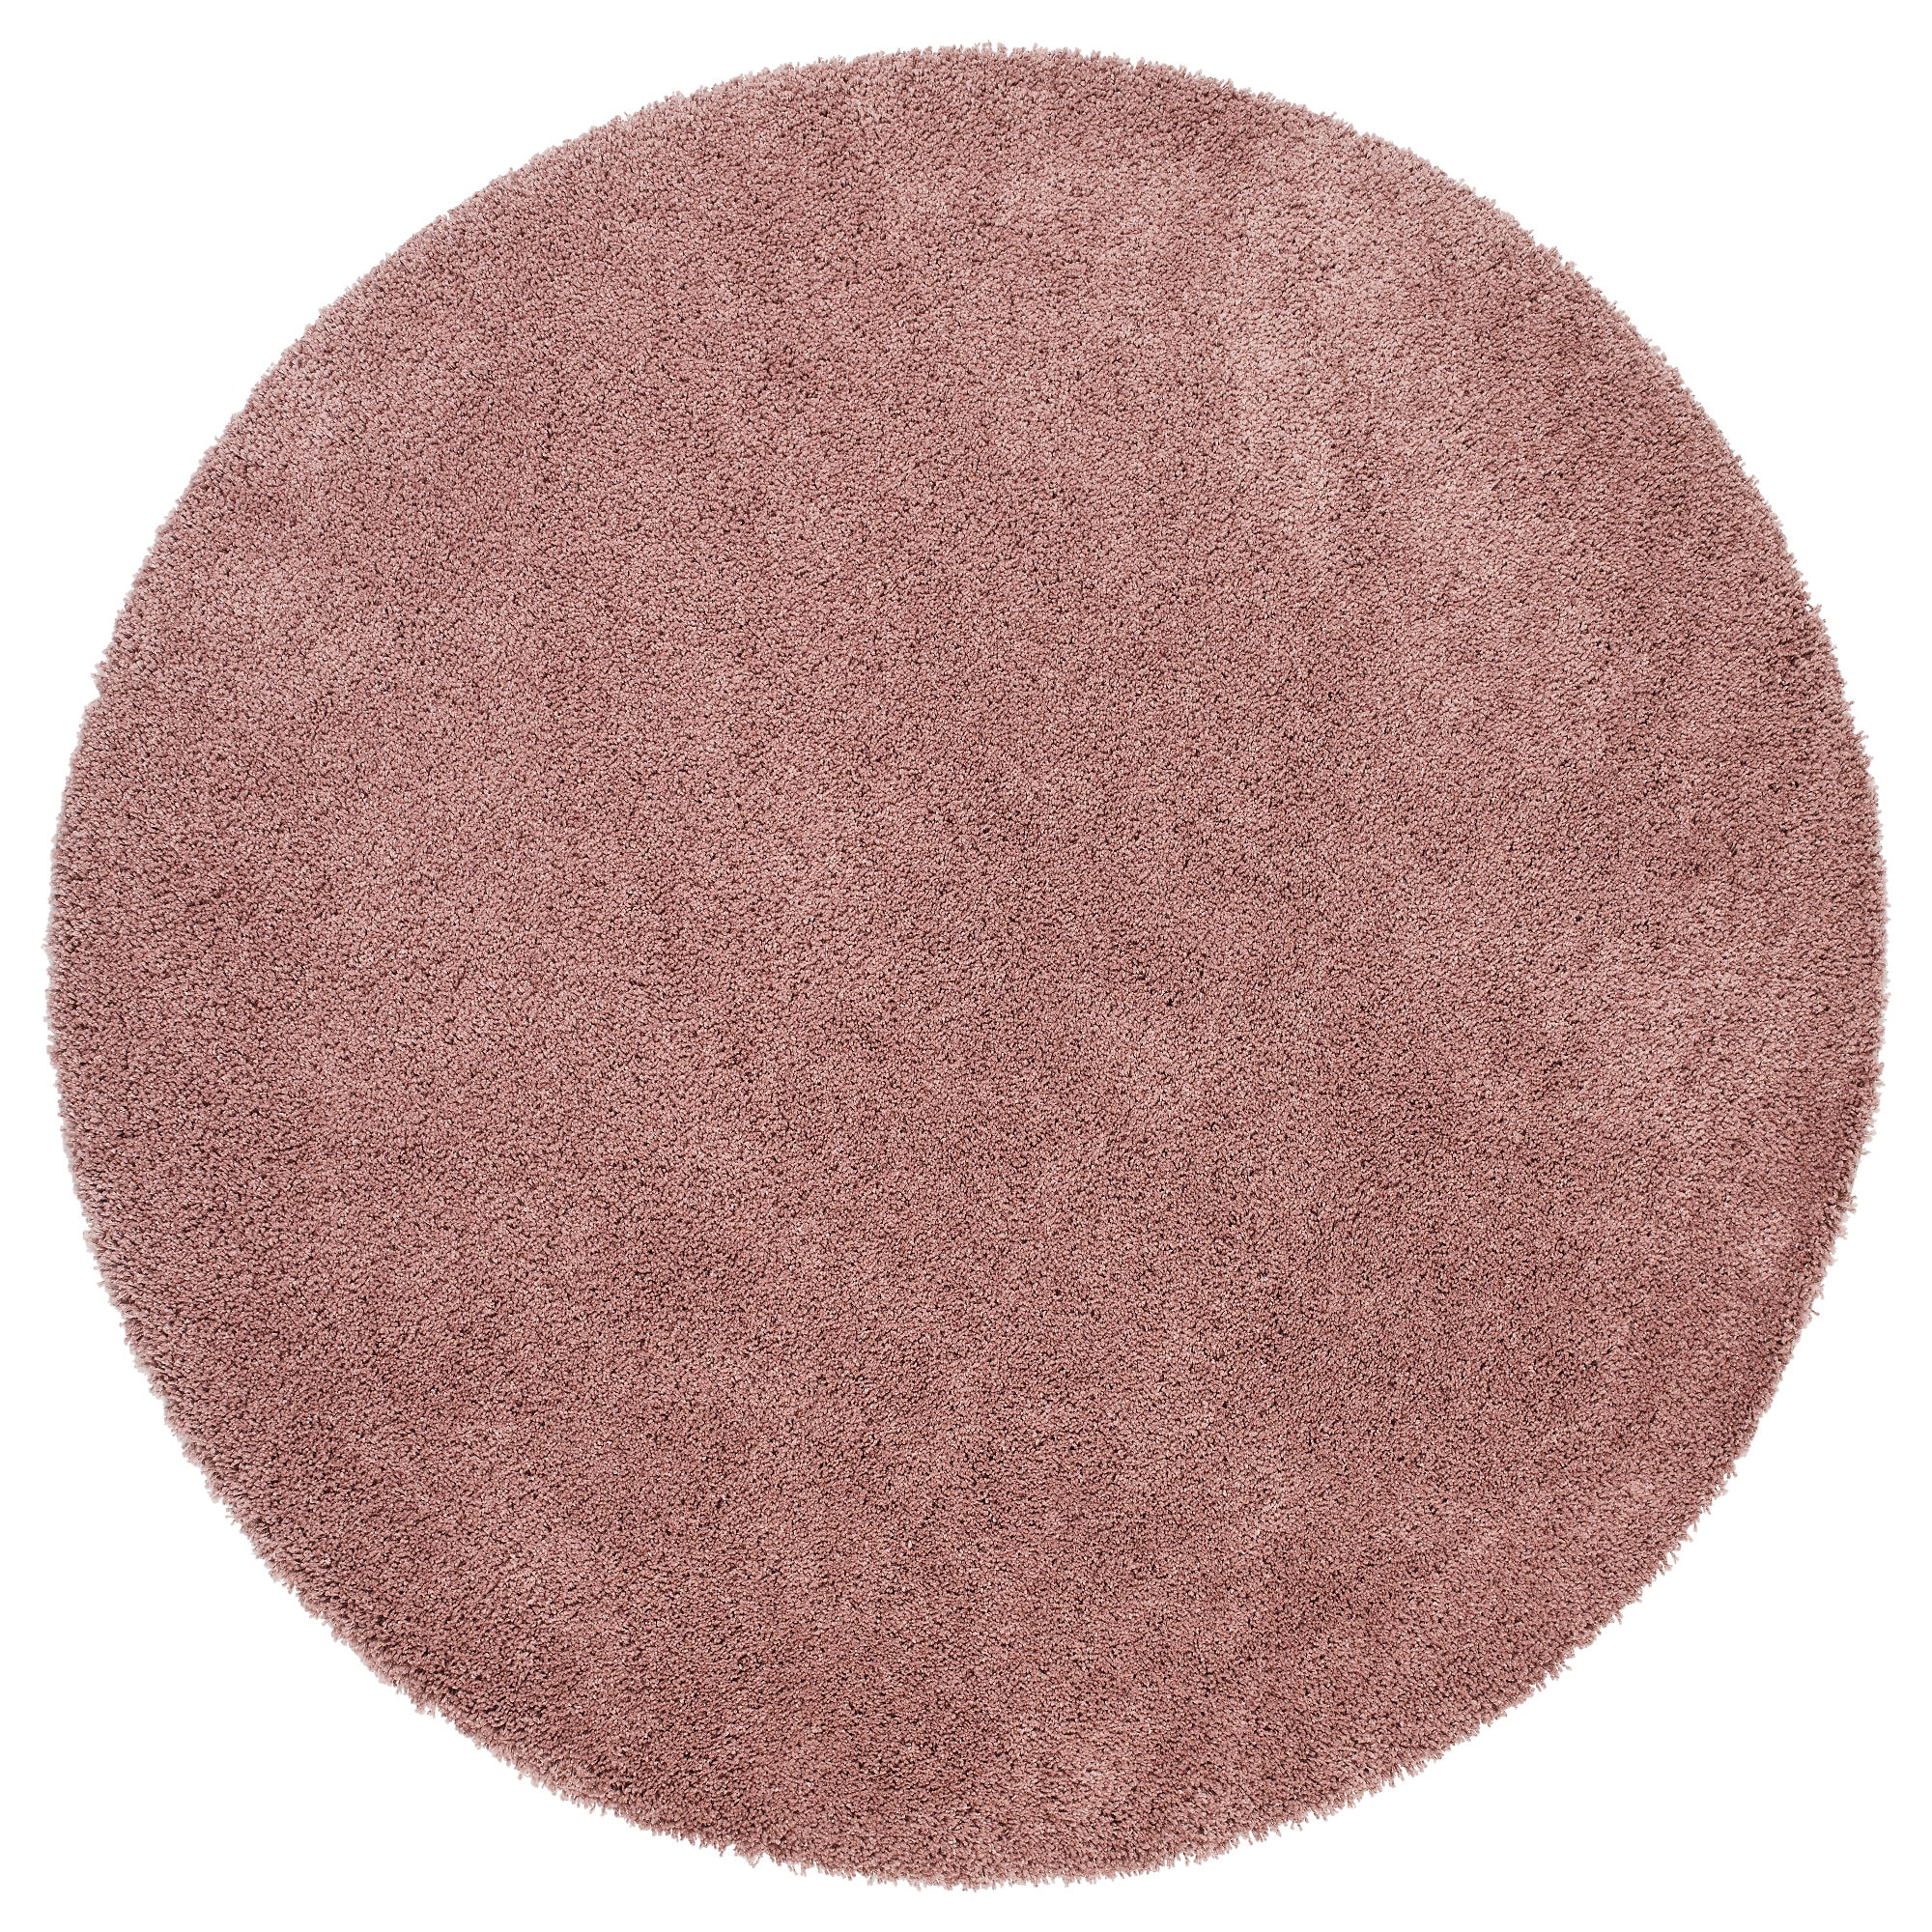 ÅDUM Rug, High Pile, Pale Pink Diameter: 130 Cm Thickness: 18 Mm